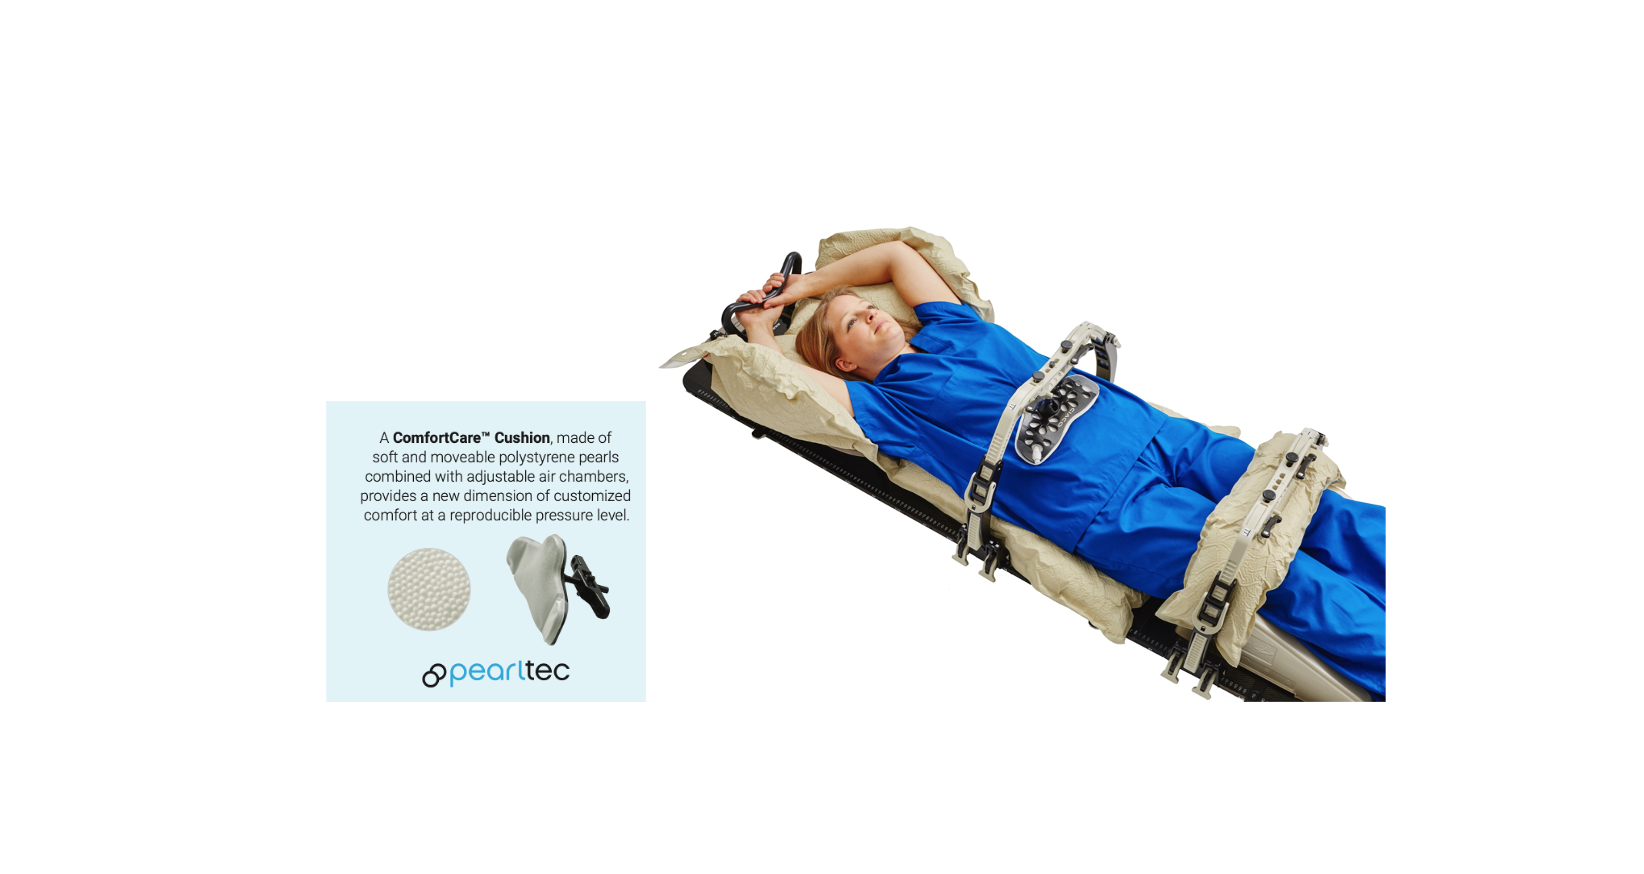 Patient in SBRT position using Pearltec cushion for breathing suppression